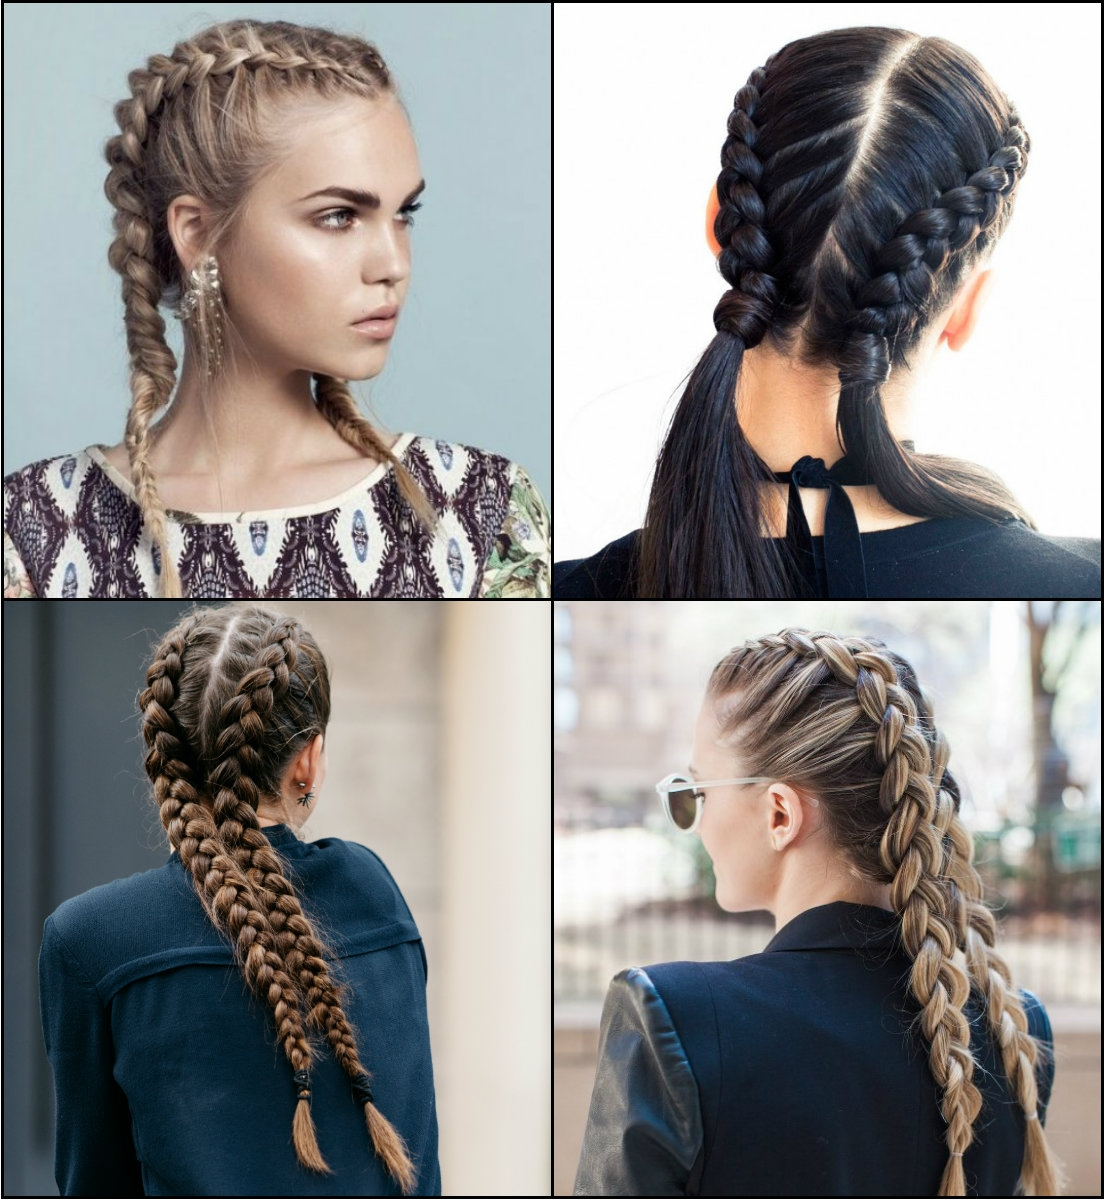 Favorite Double Braided Hairstyles Pertaining To Volitional Double Braids Hairstyles To Dare Look Different How To (View 2 of 20)